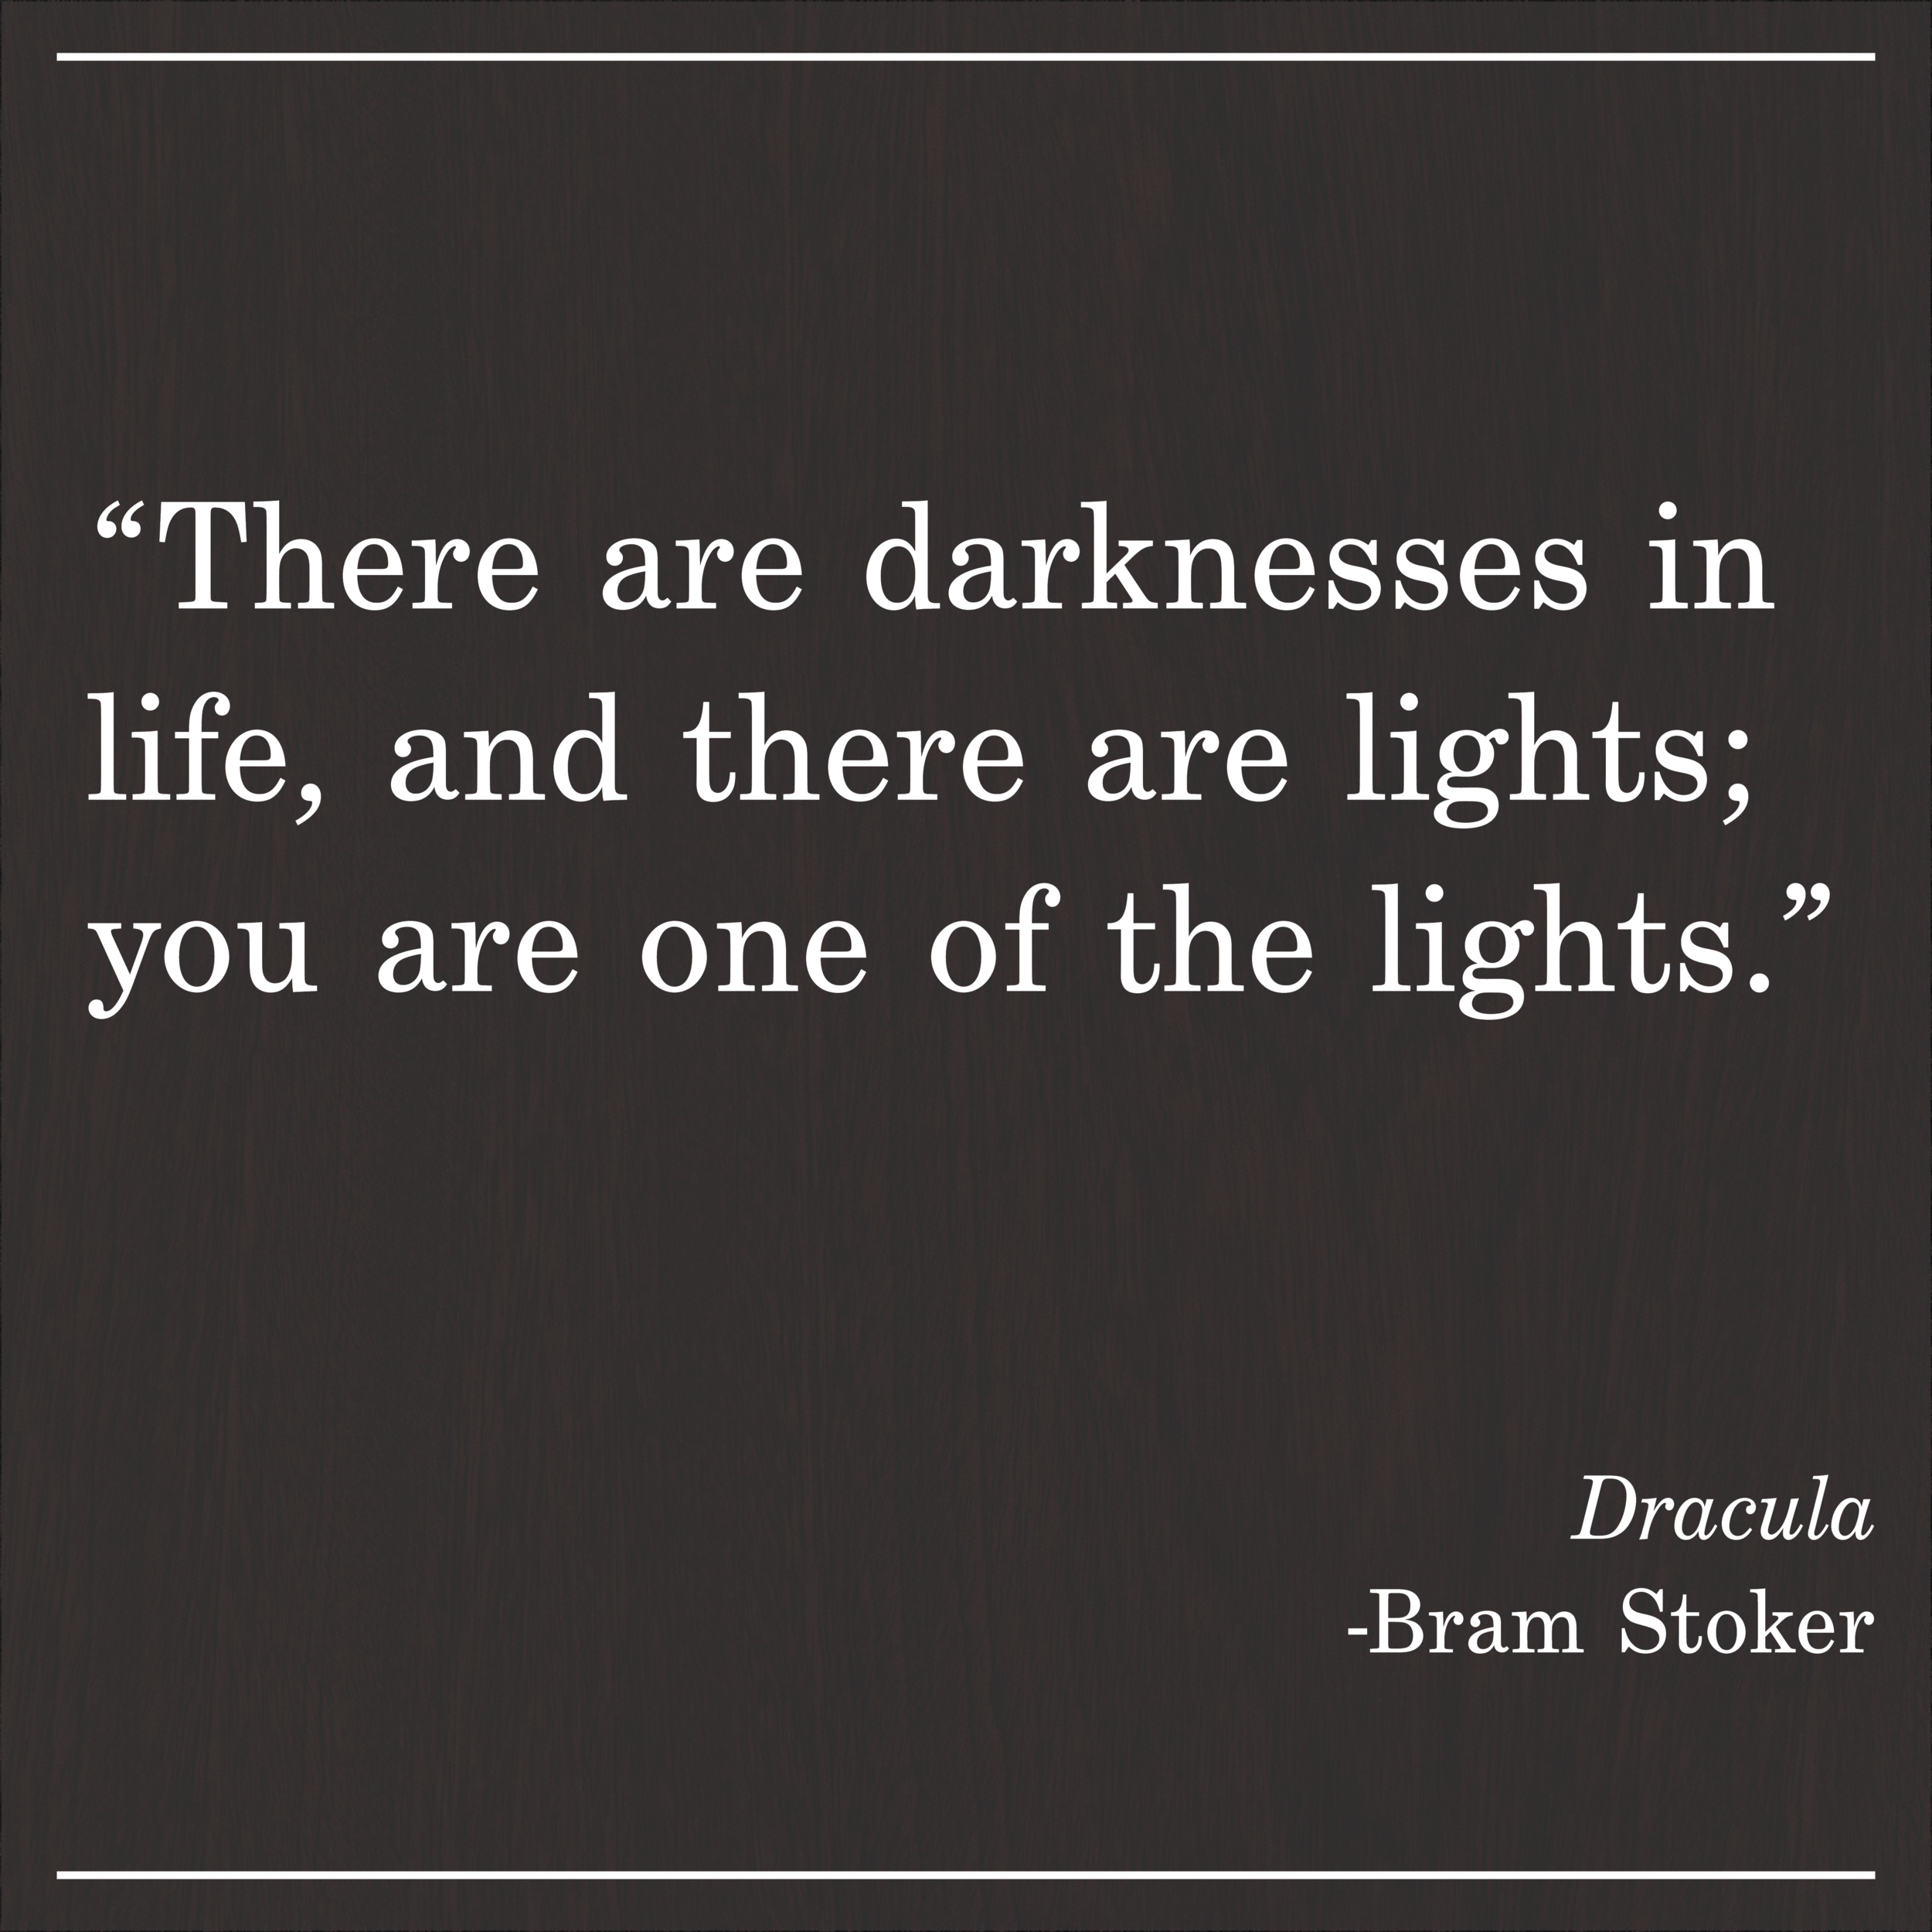 Daily Quote Dracula by Bram Stoker